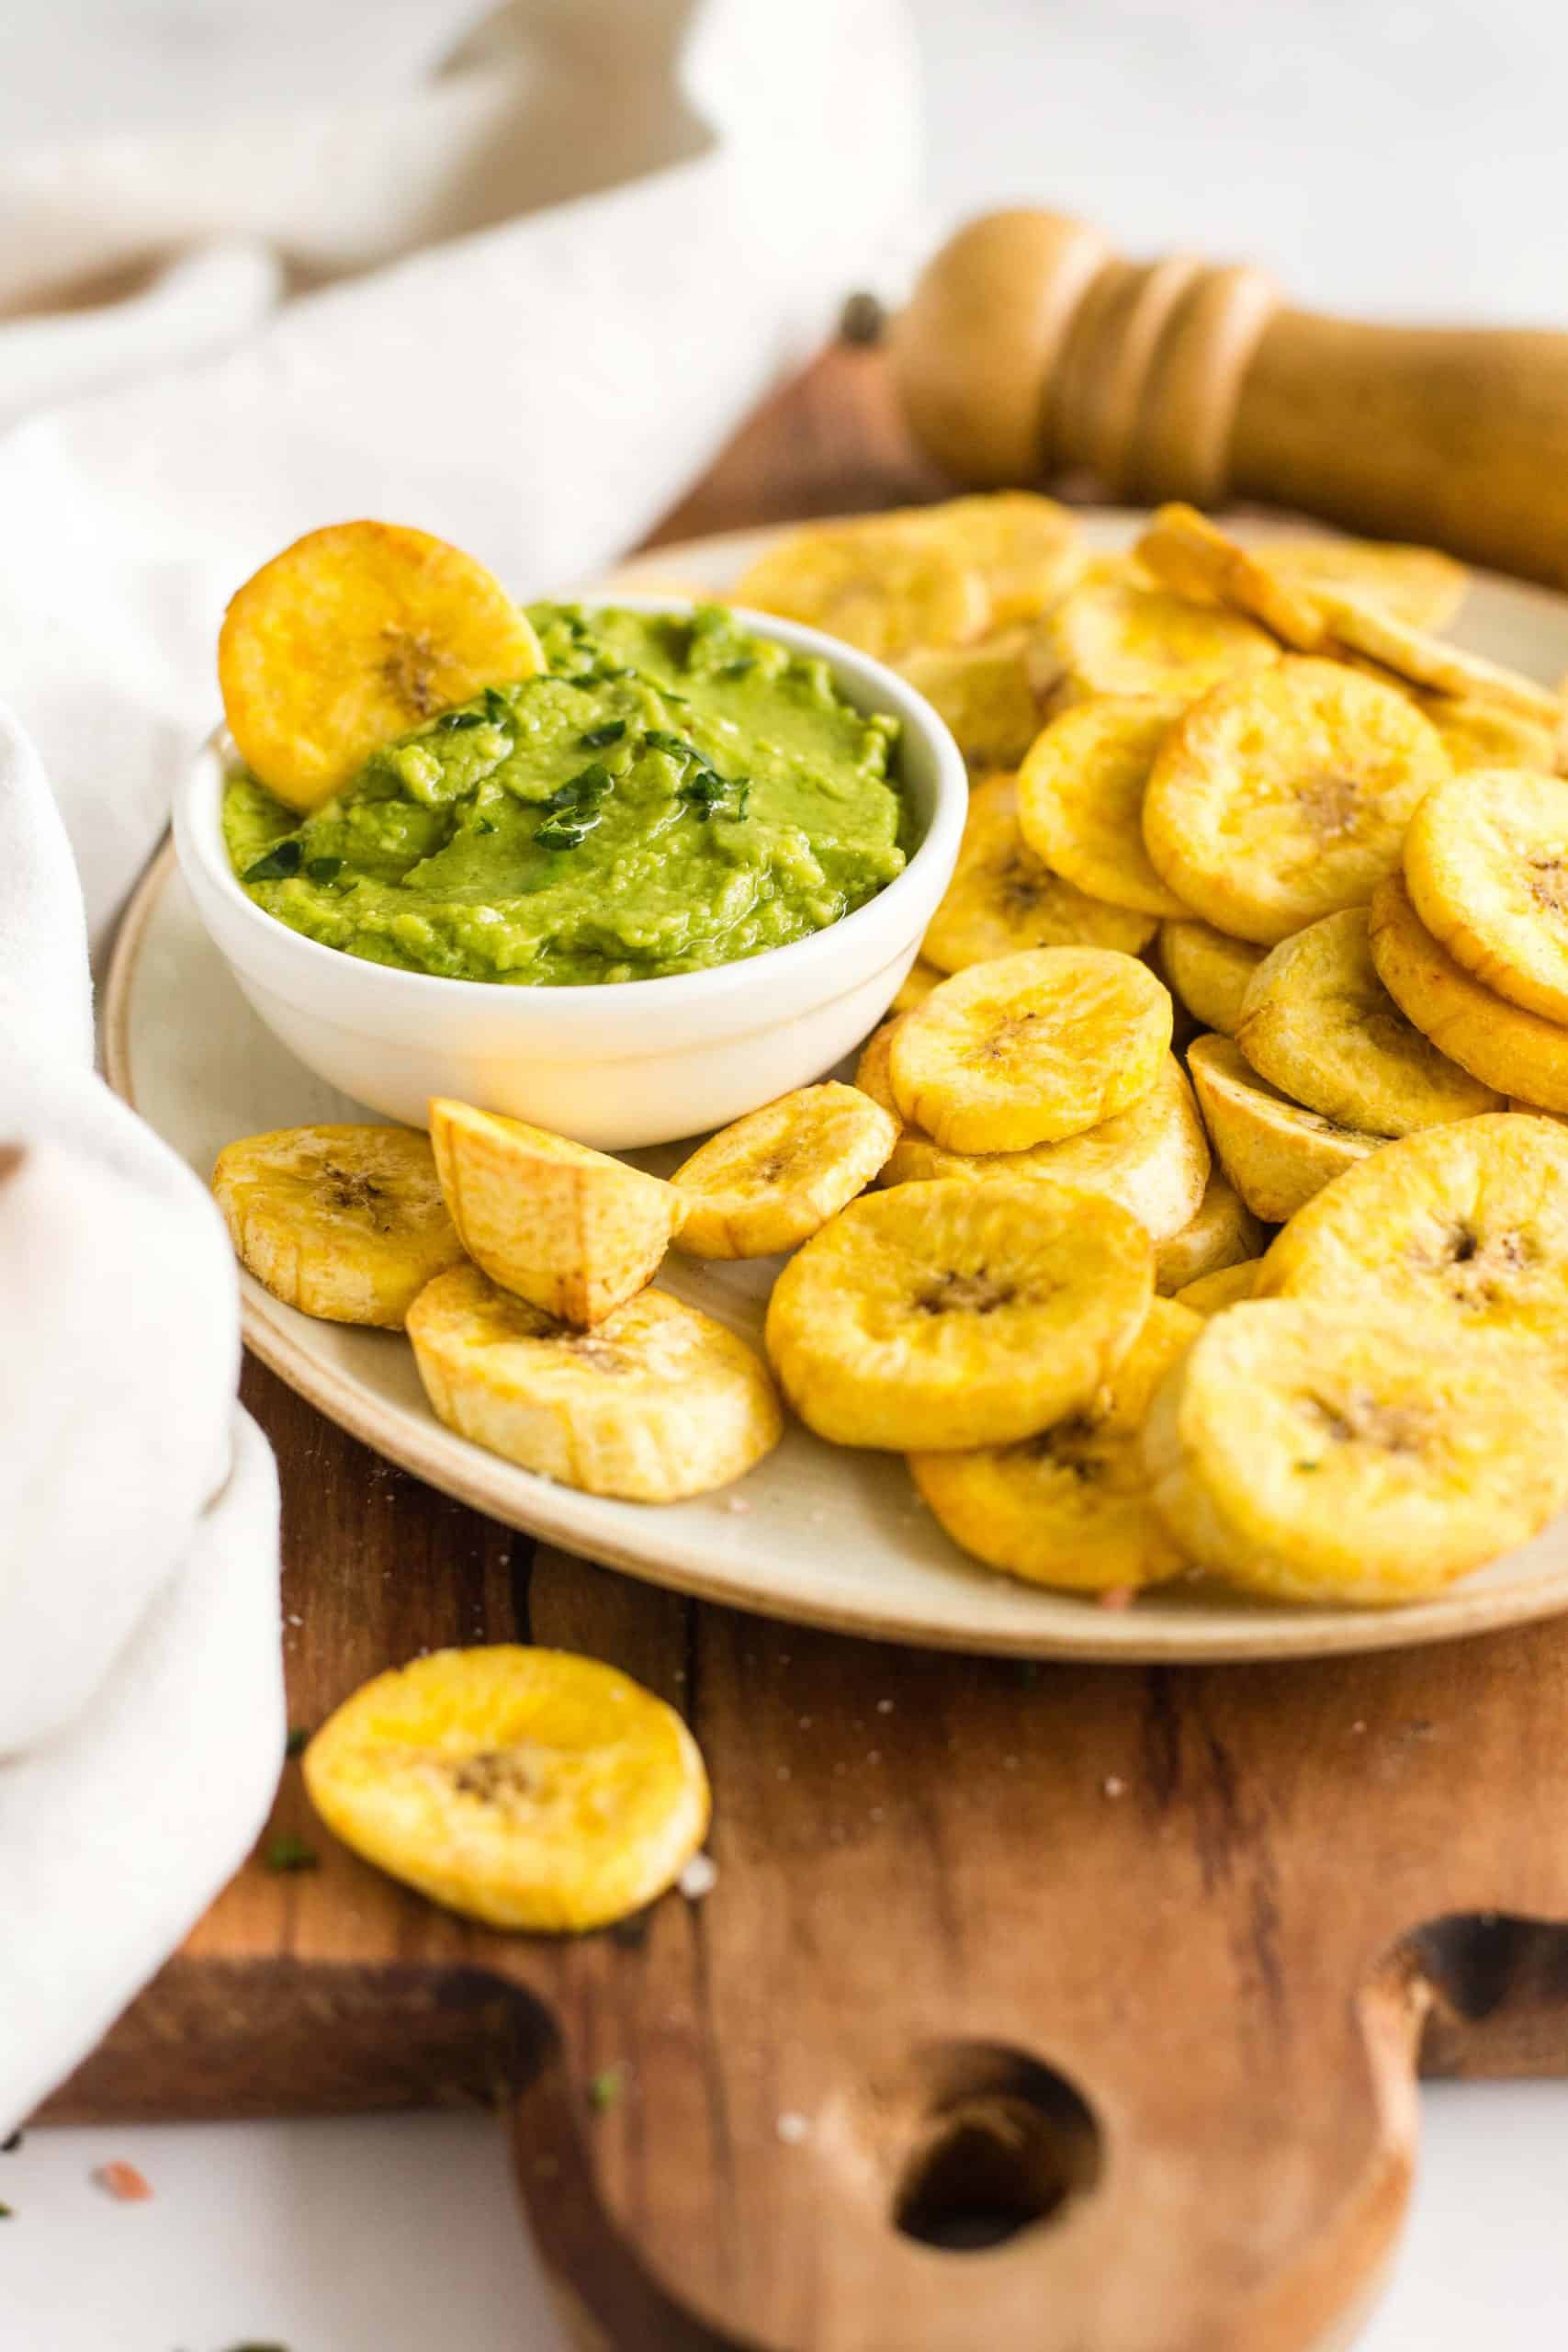 A plantain chip in a small bowl of guacamole alongside a plate of plantains.